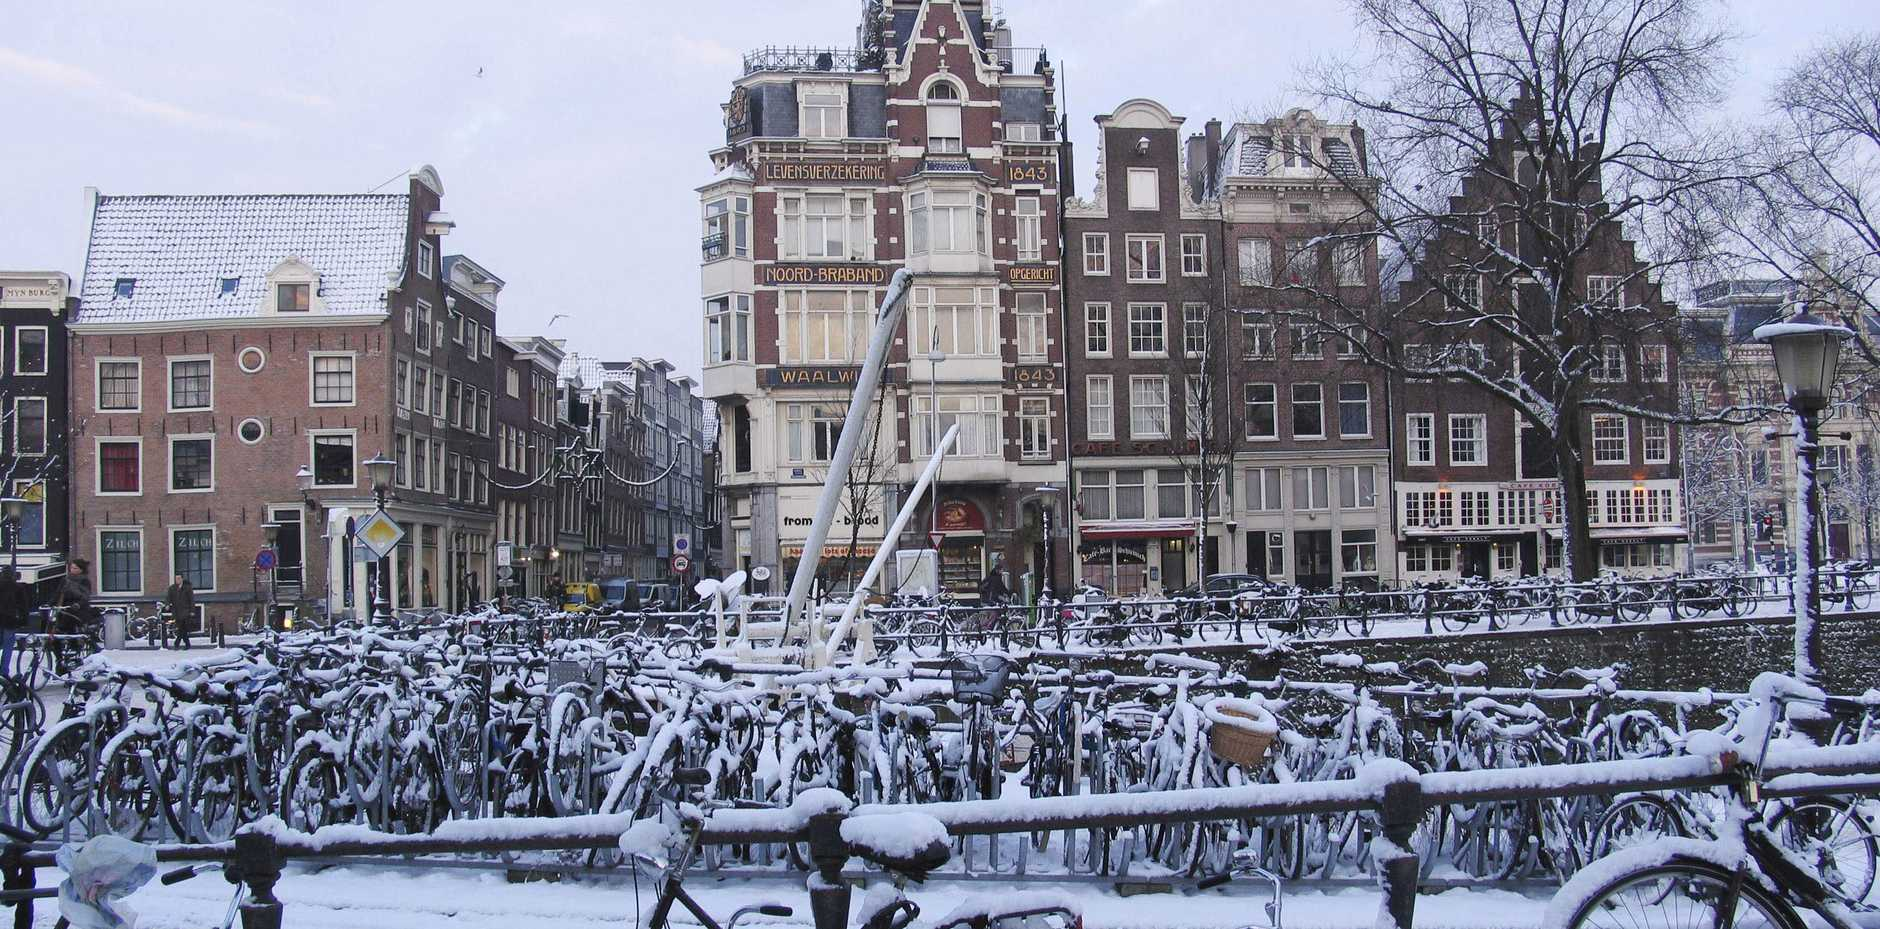 Amsterdam is both the most bicycle-friendly capital city in the world, even in winter cycling is popular in the city.